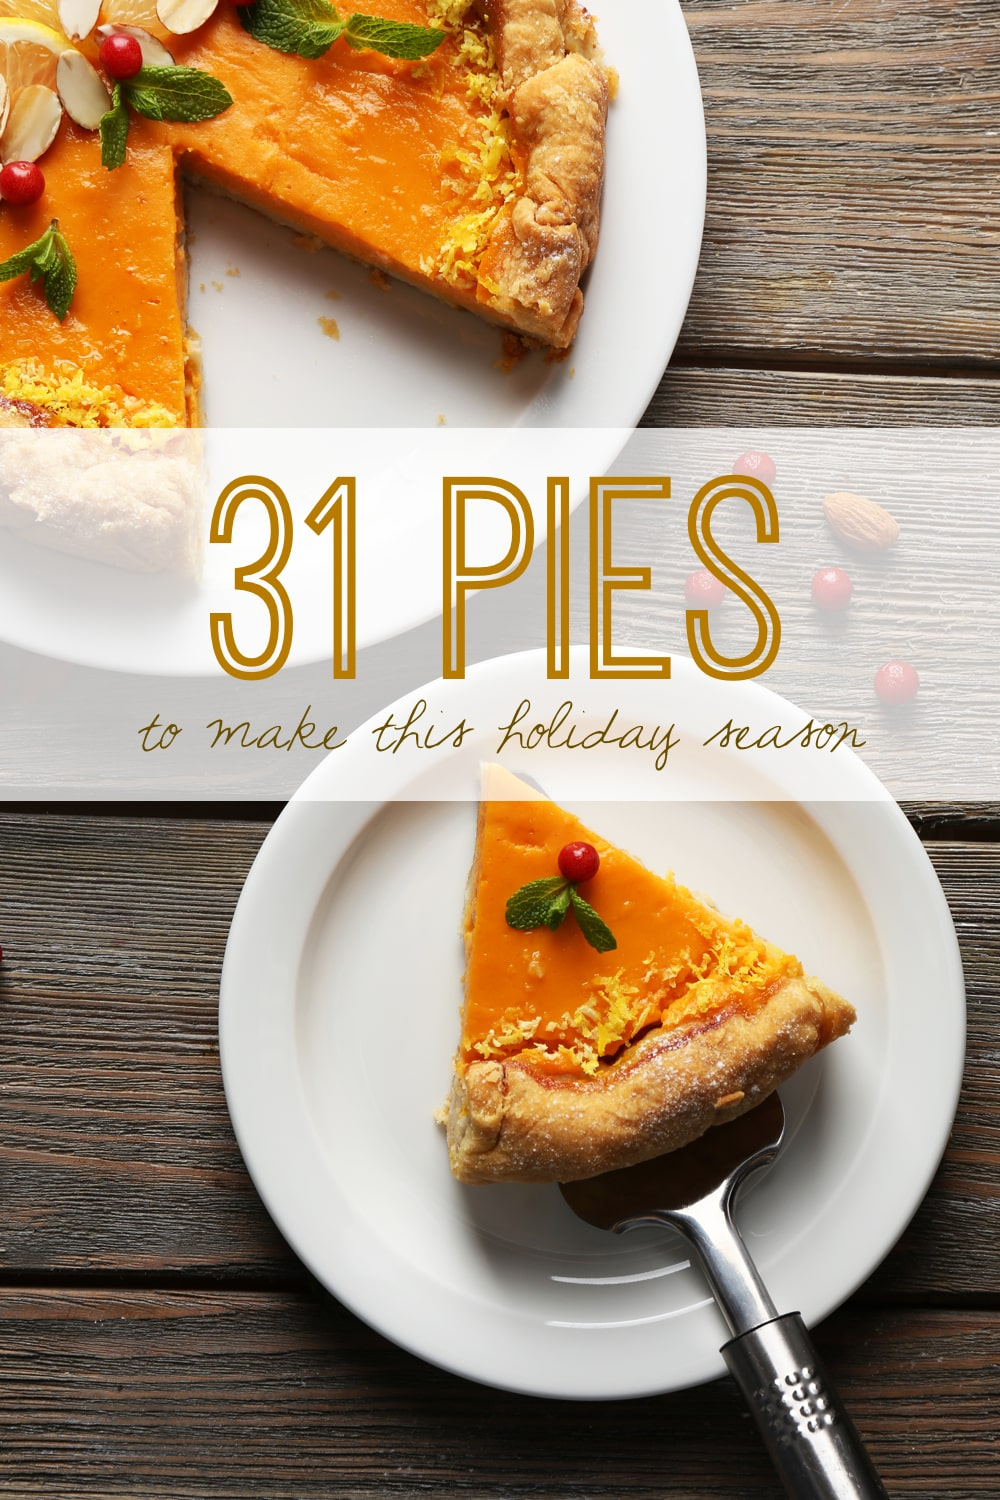 31 Pies to Make This Holiday Season